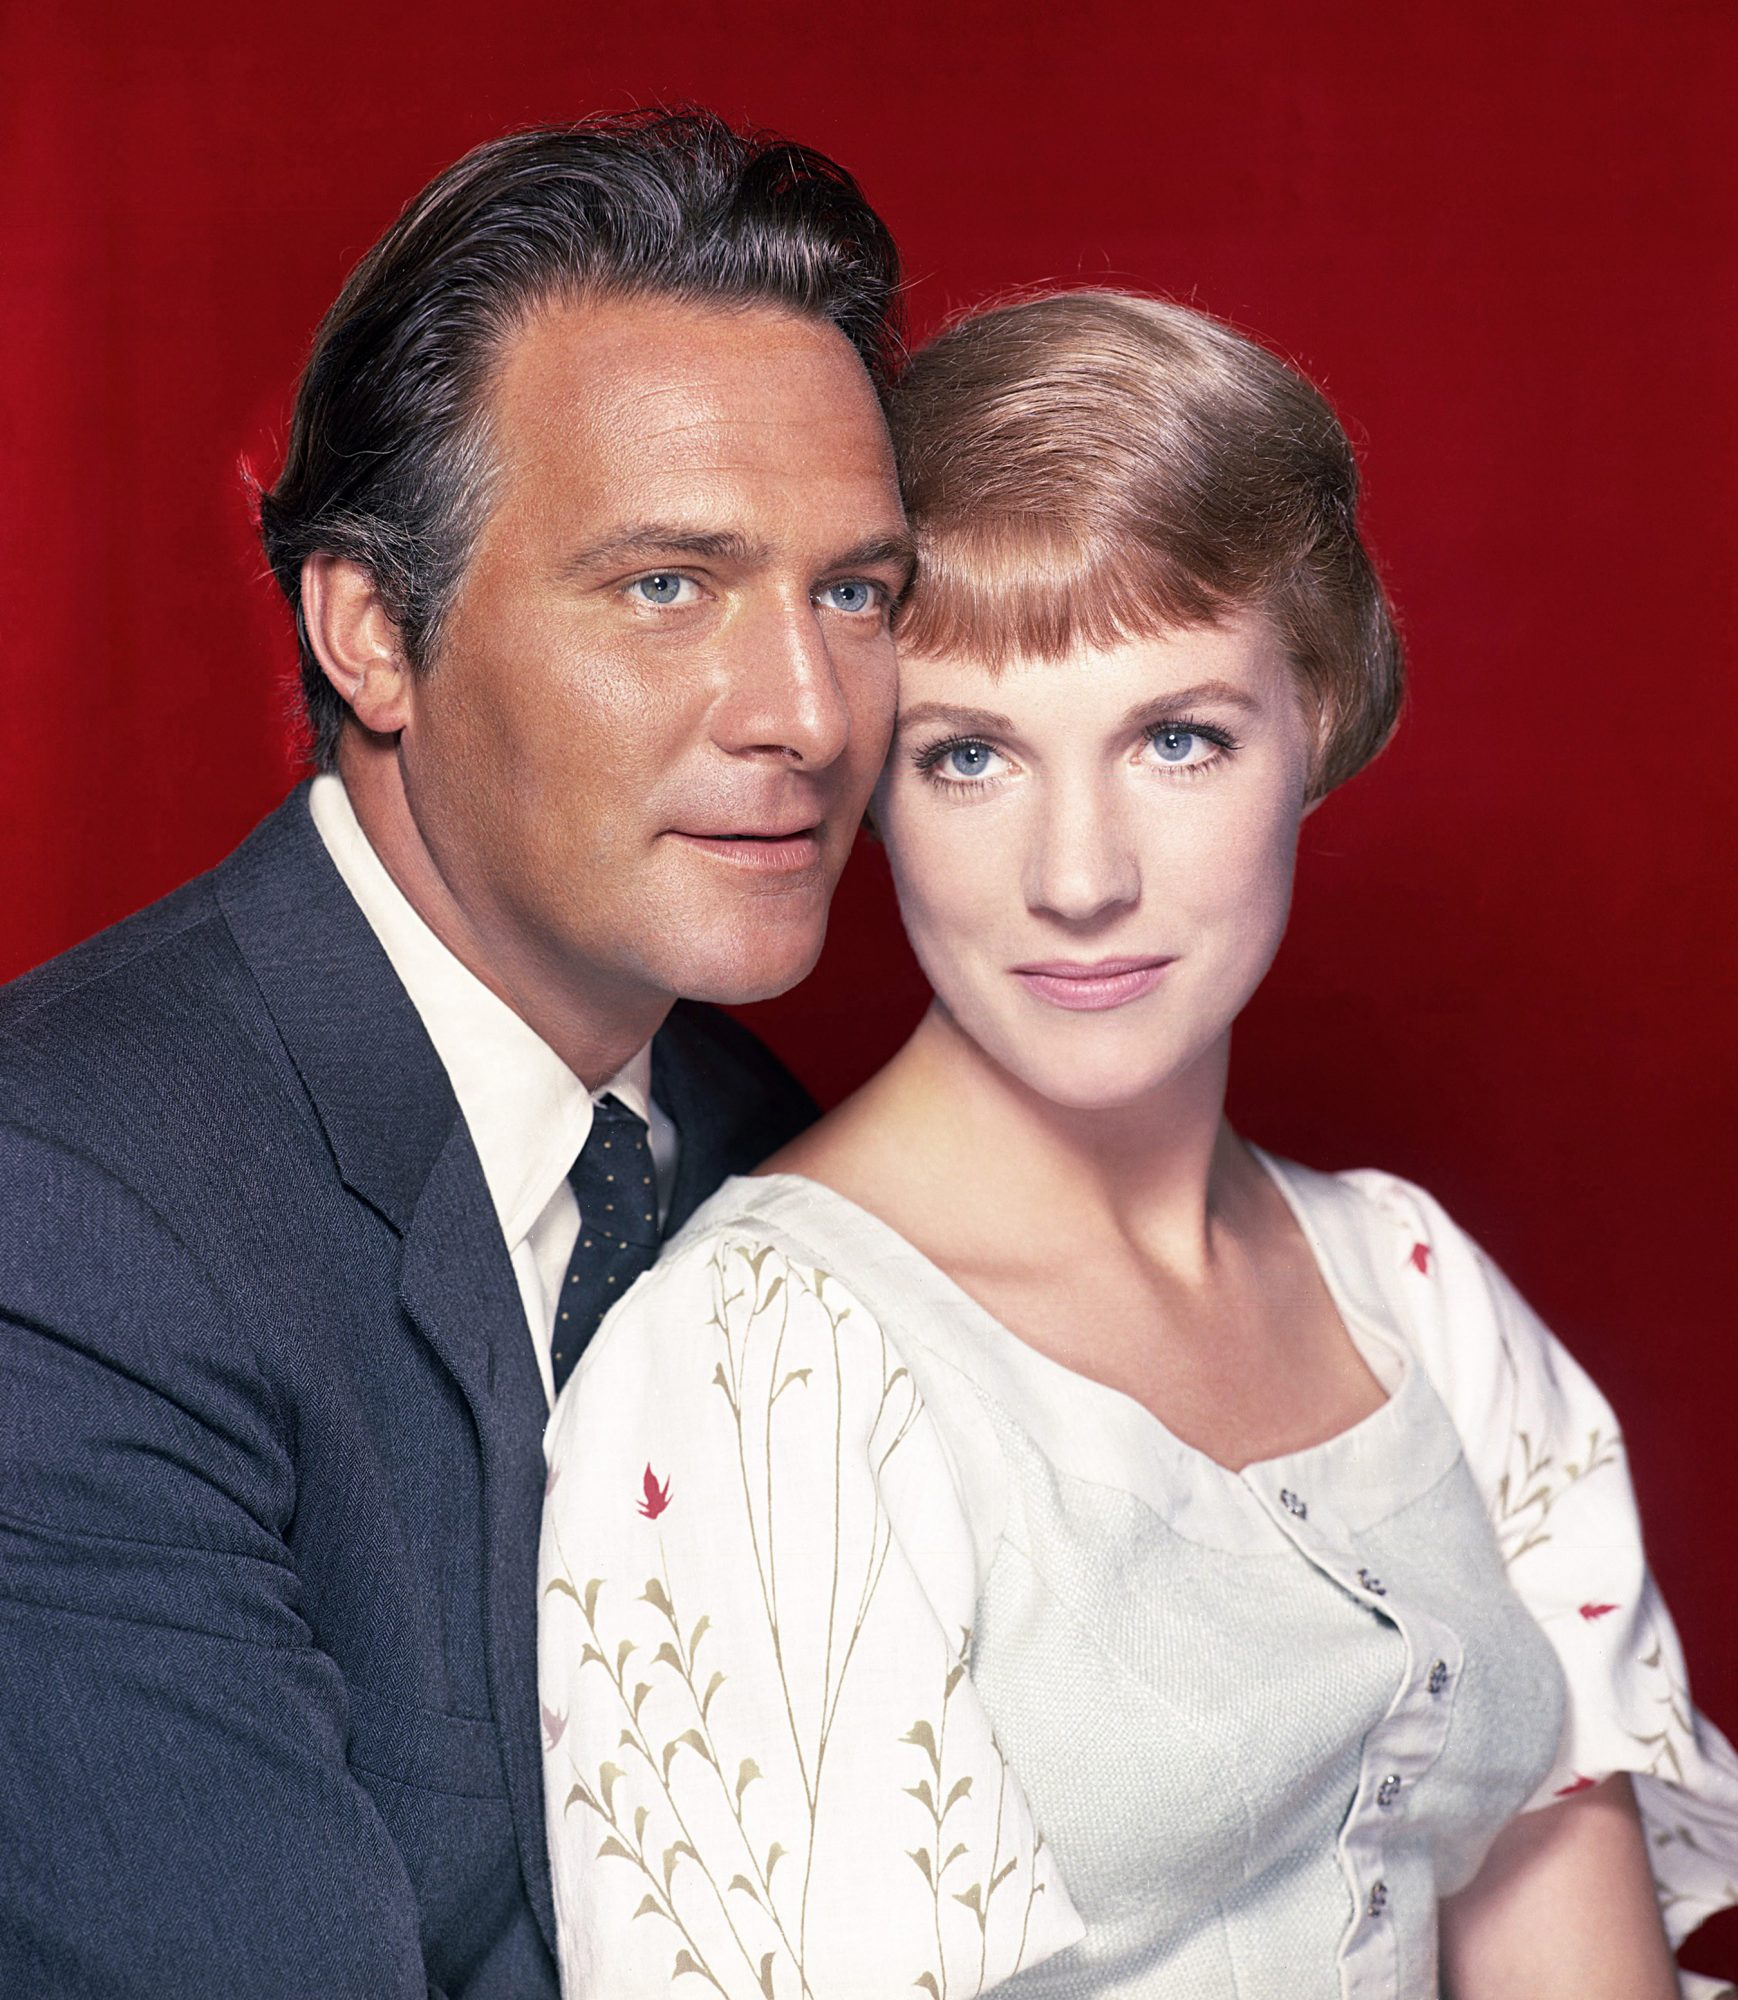 THE SOUND OF MUSIC, from left: Christopher Plummer, Julie Andrews, 1965. TM & Copyright ©20th